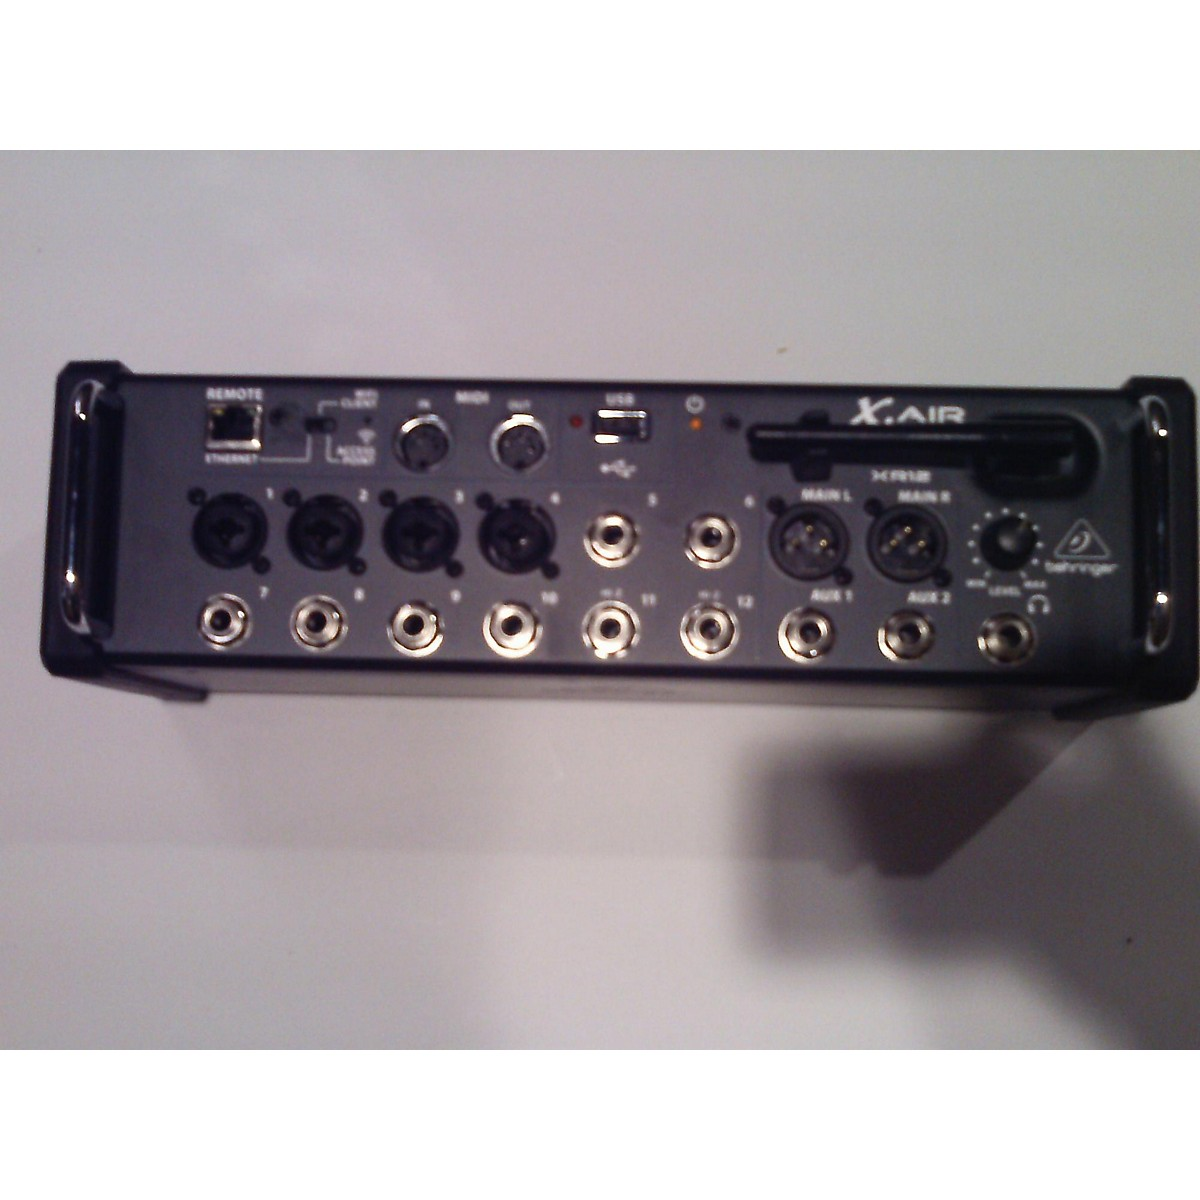 Behringer XAIR12 Audio Interface